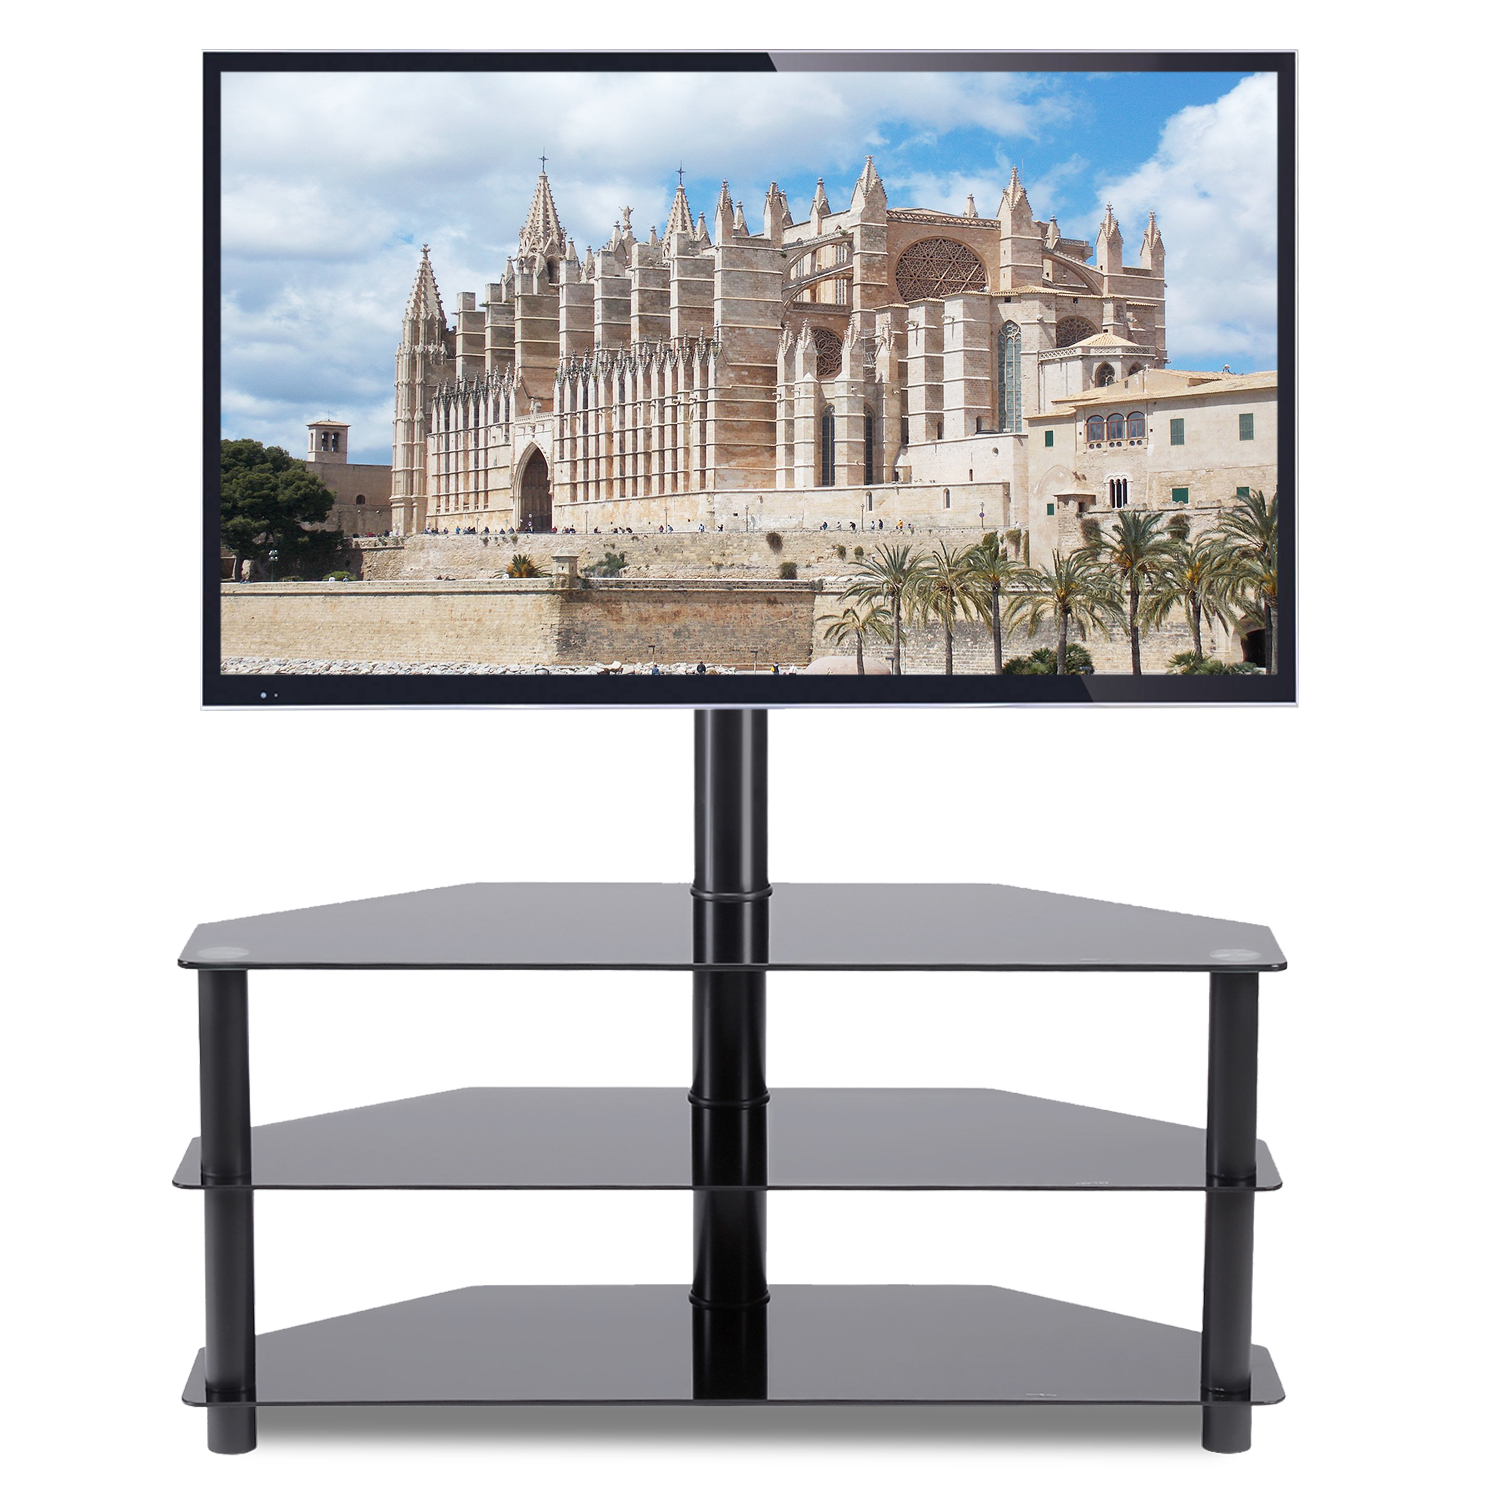 Black Corner Floor Tv Stand With Swivel Mount Bracket For For 32 37